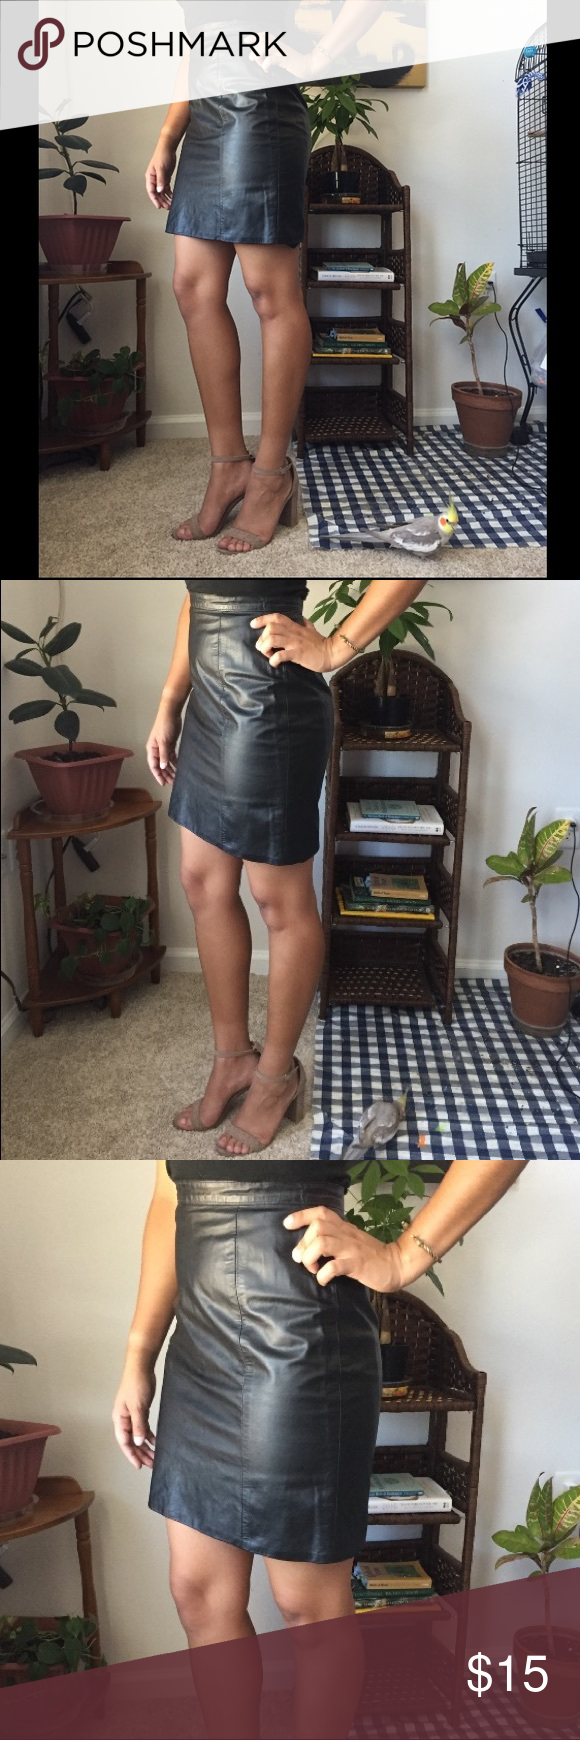 c99d3c5d6dc8 High Wasted Leather Pencil Skirt Authentic vintage leather skirt. The label  says 9/10